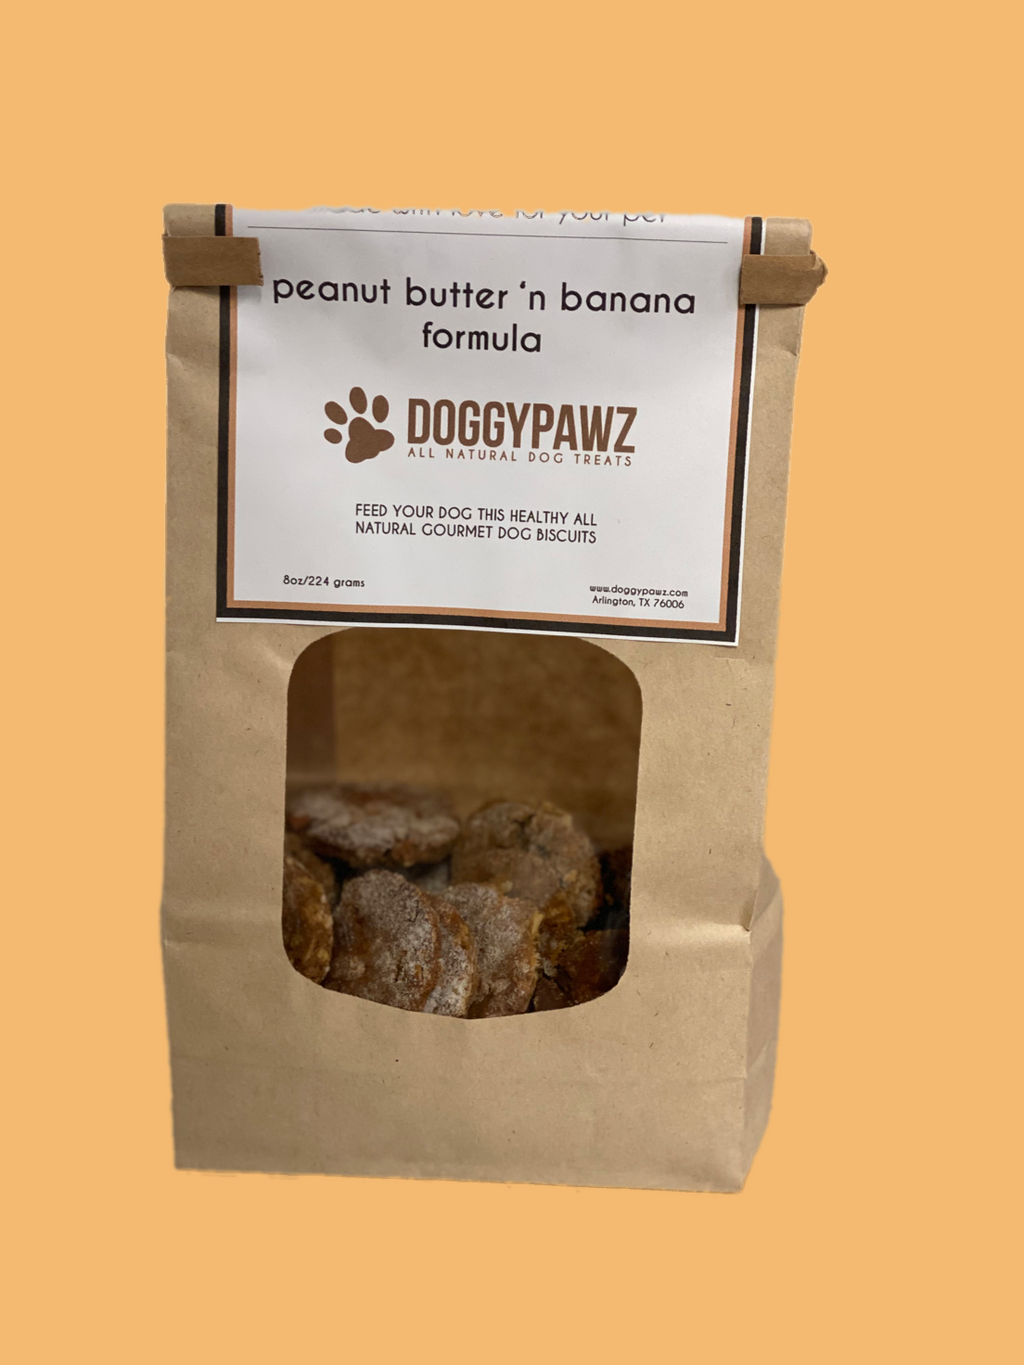 Peanut Butter & Banana - Doggypawz, LLC